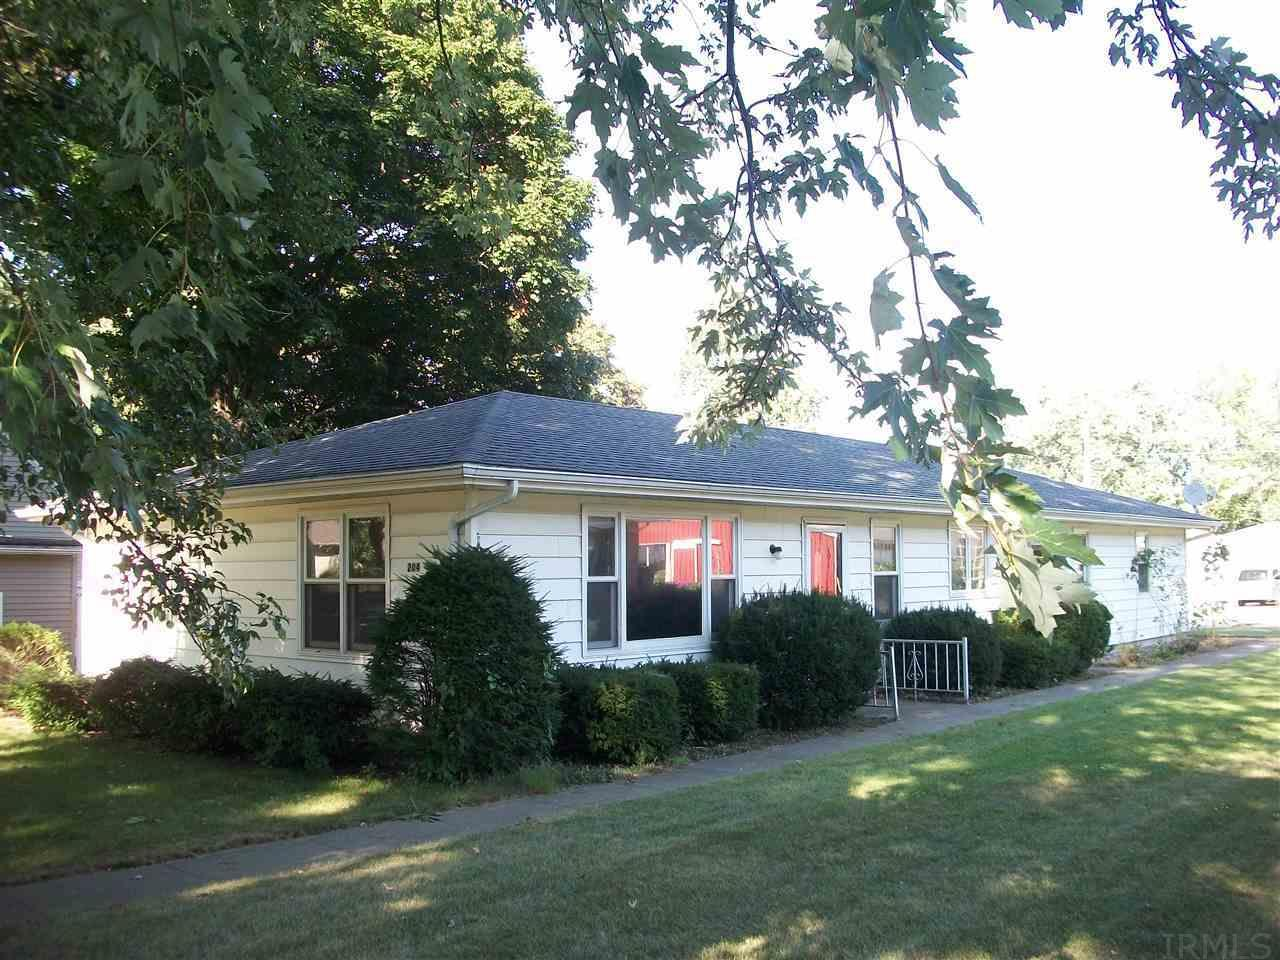 204 S Olive Wakarusa, IN 46573